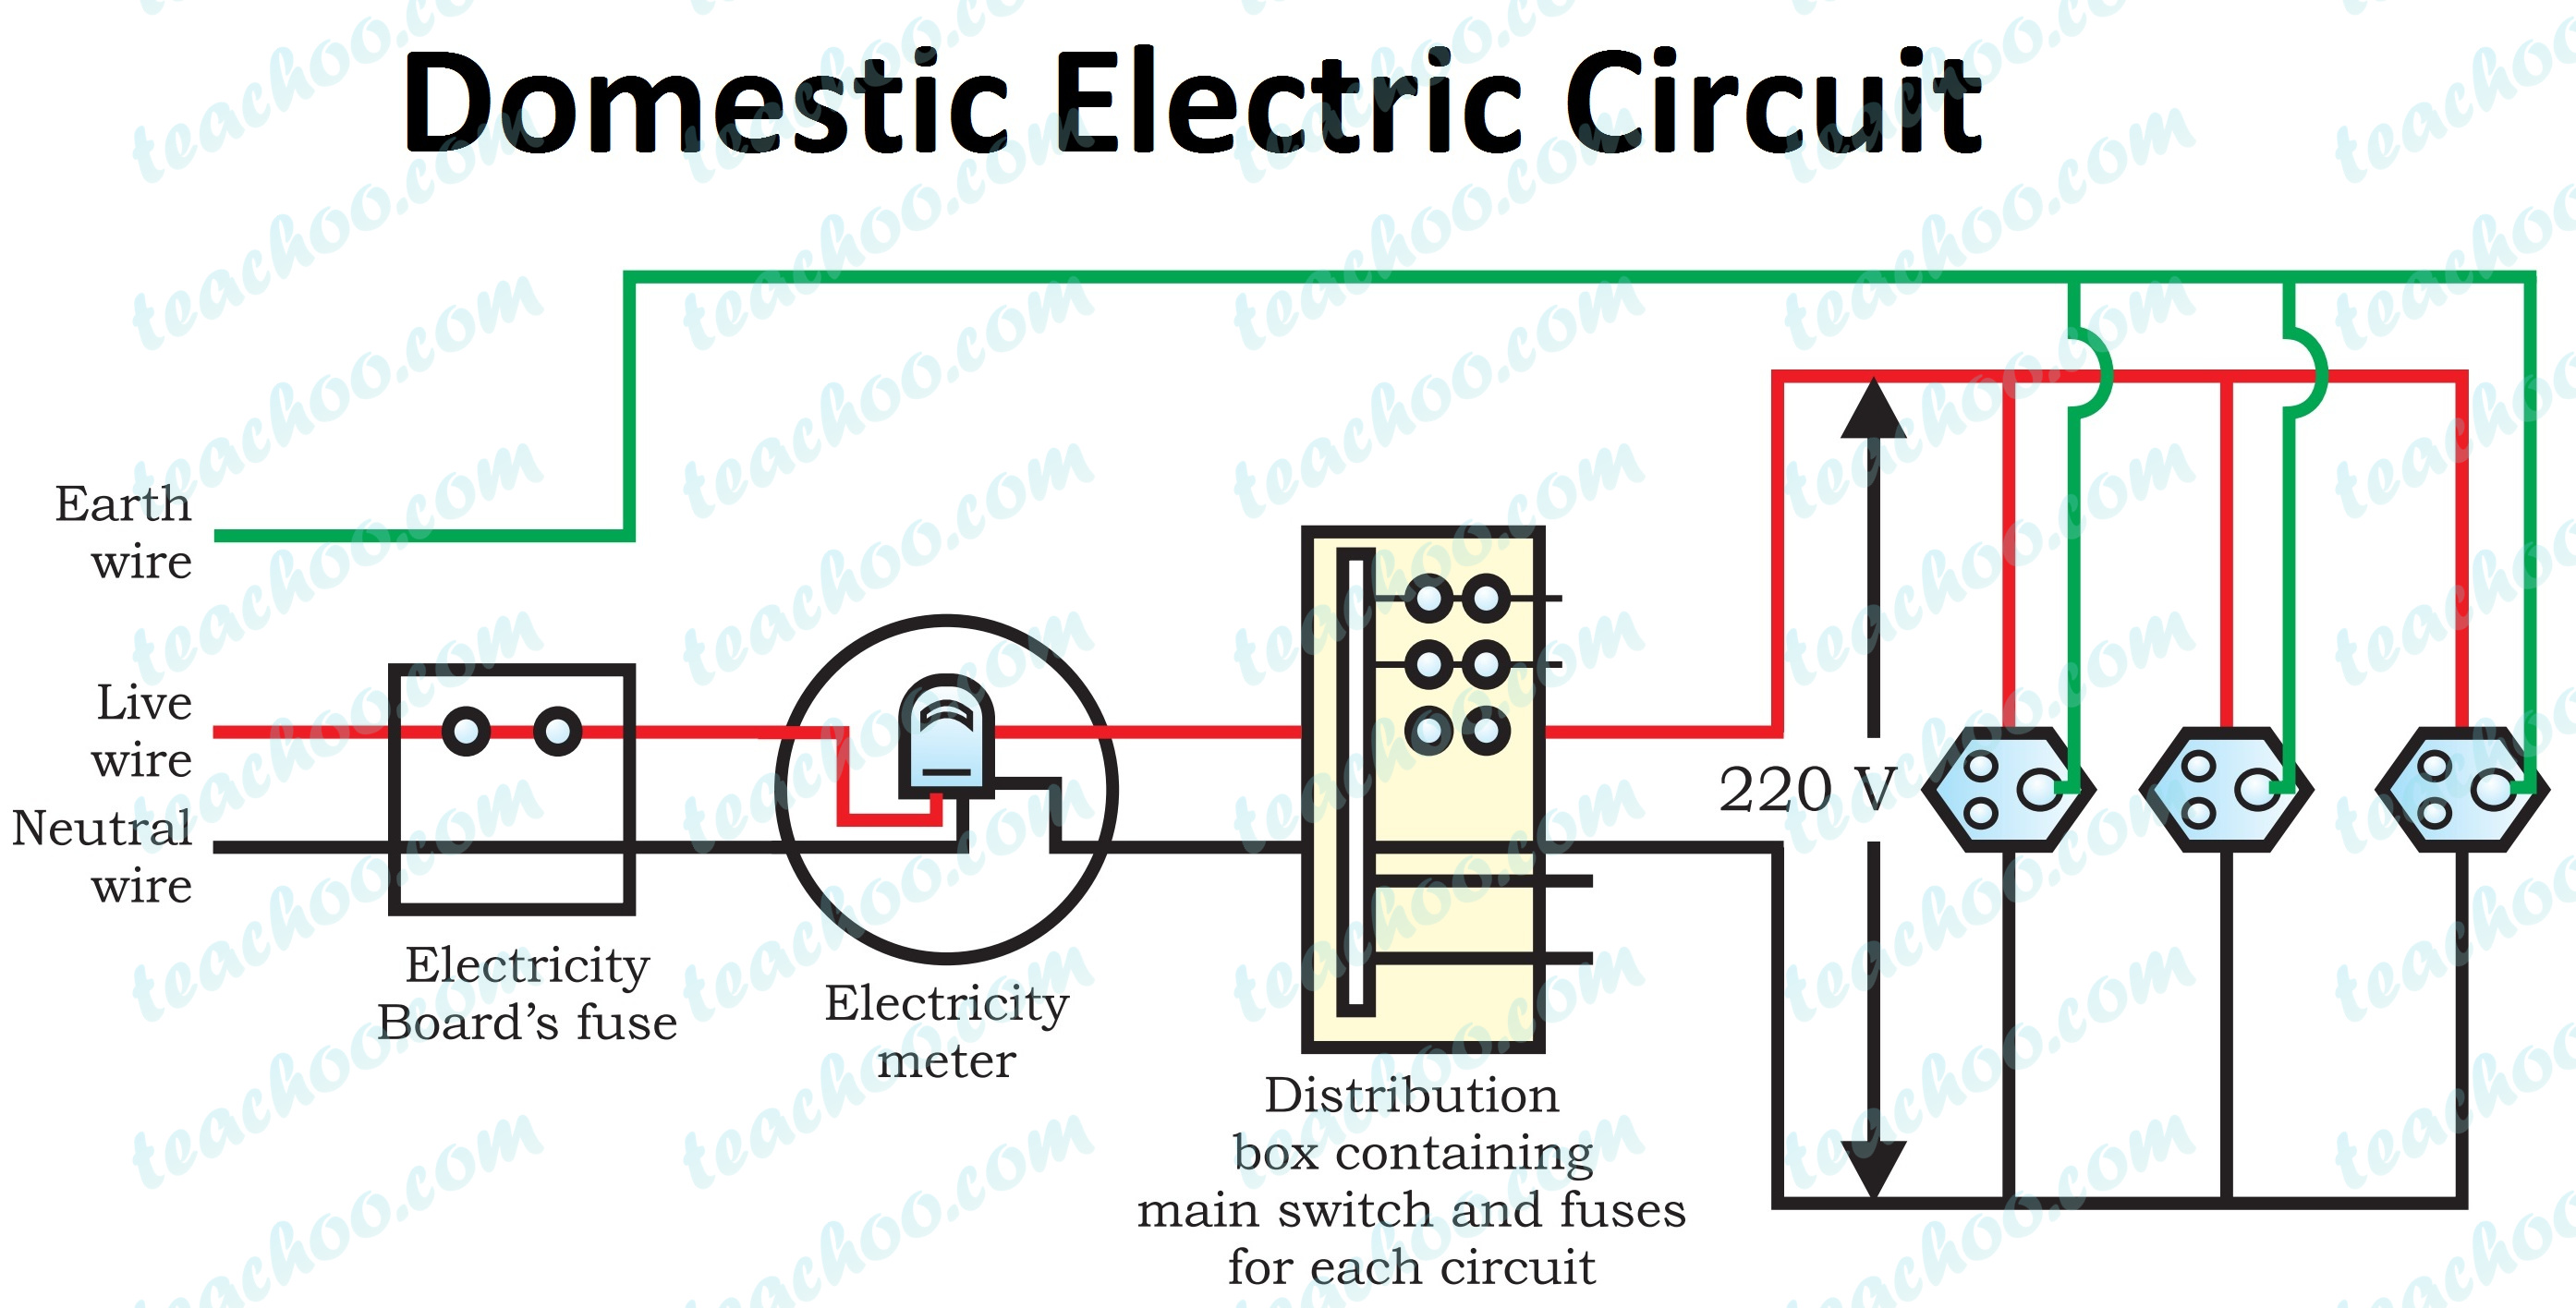 Domestic Electric Circuit   Diagram, Wires, Fuse   Class 40 Physics